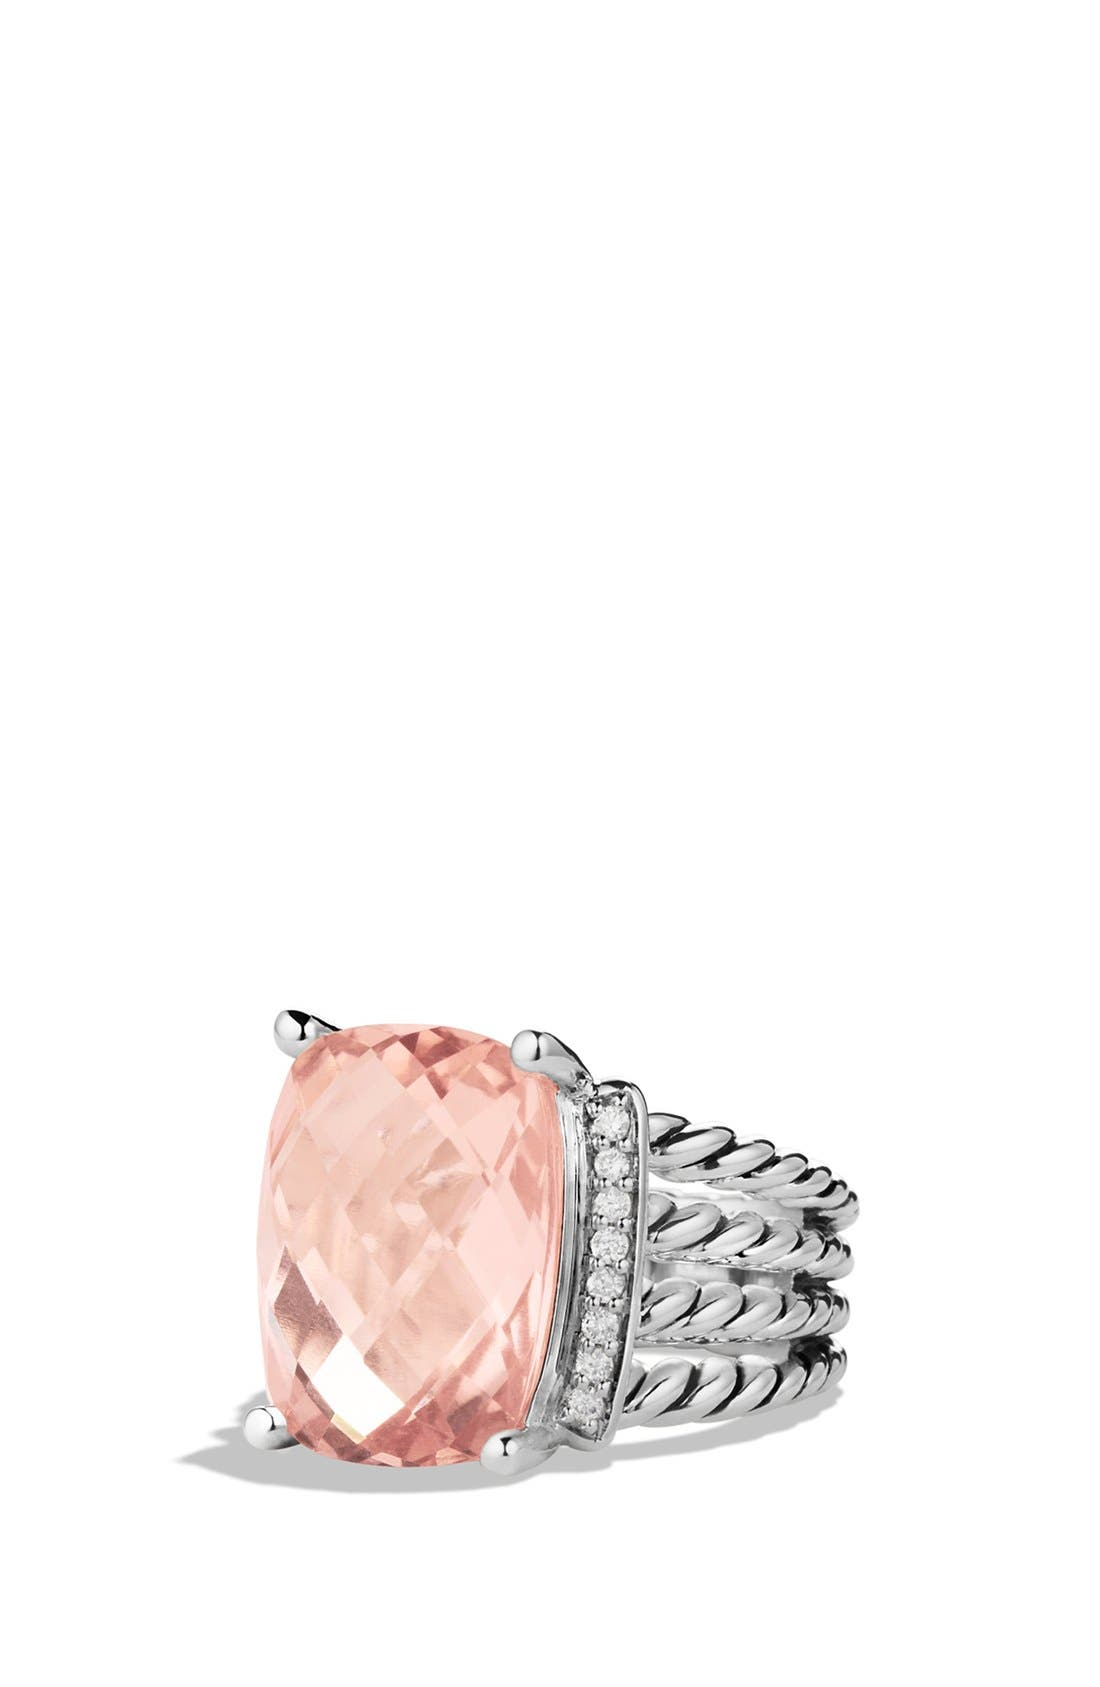 Main Image - David Yurman 'Wheaton' Ring with Semiprecious Stone & Diamonds